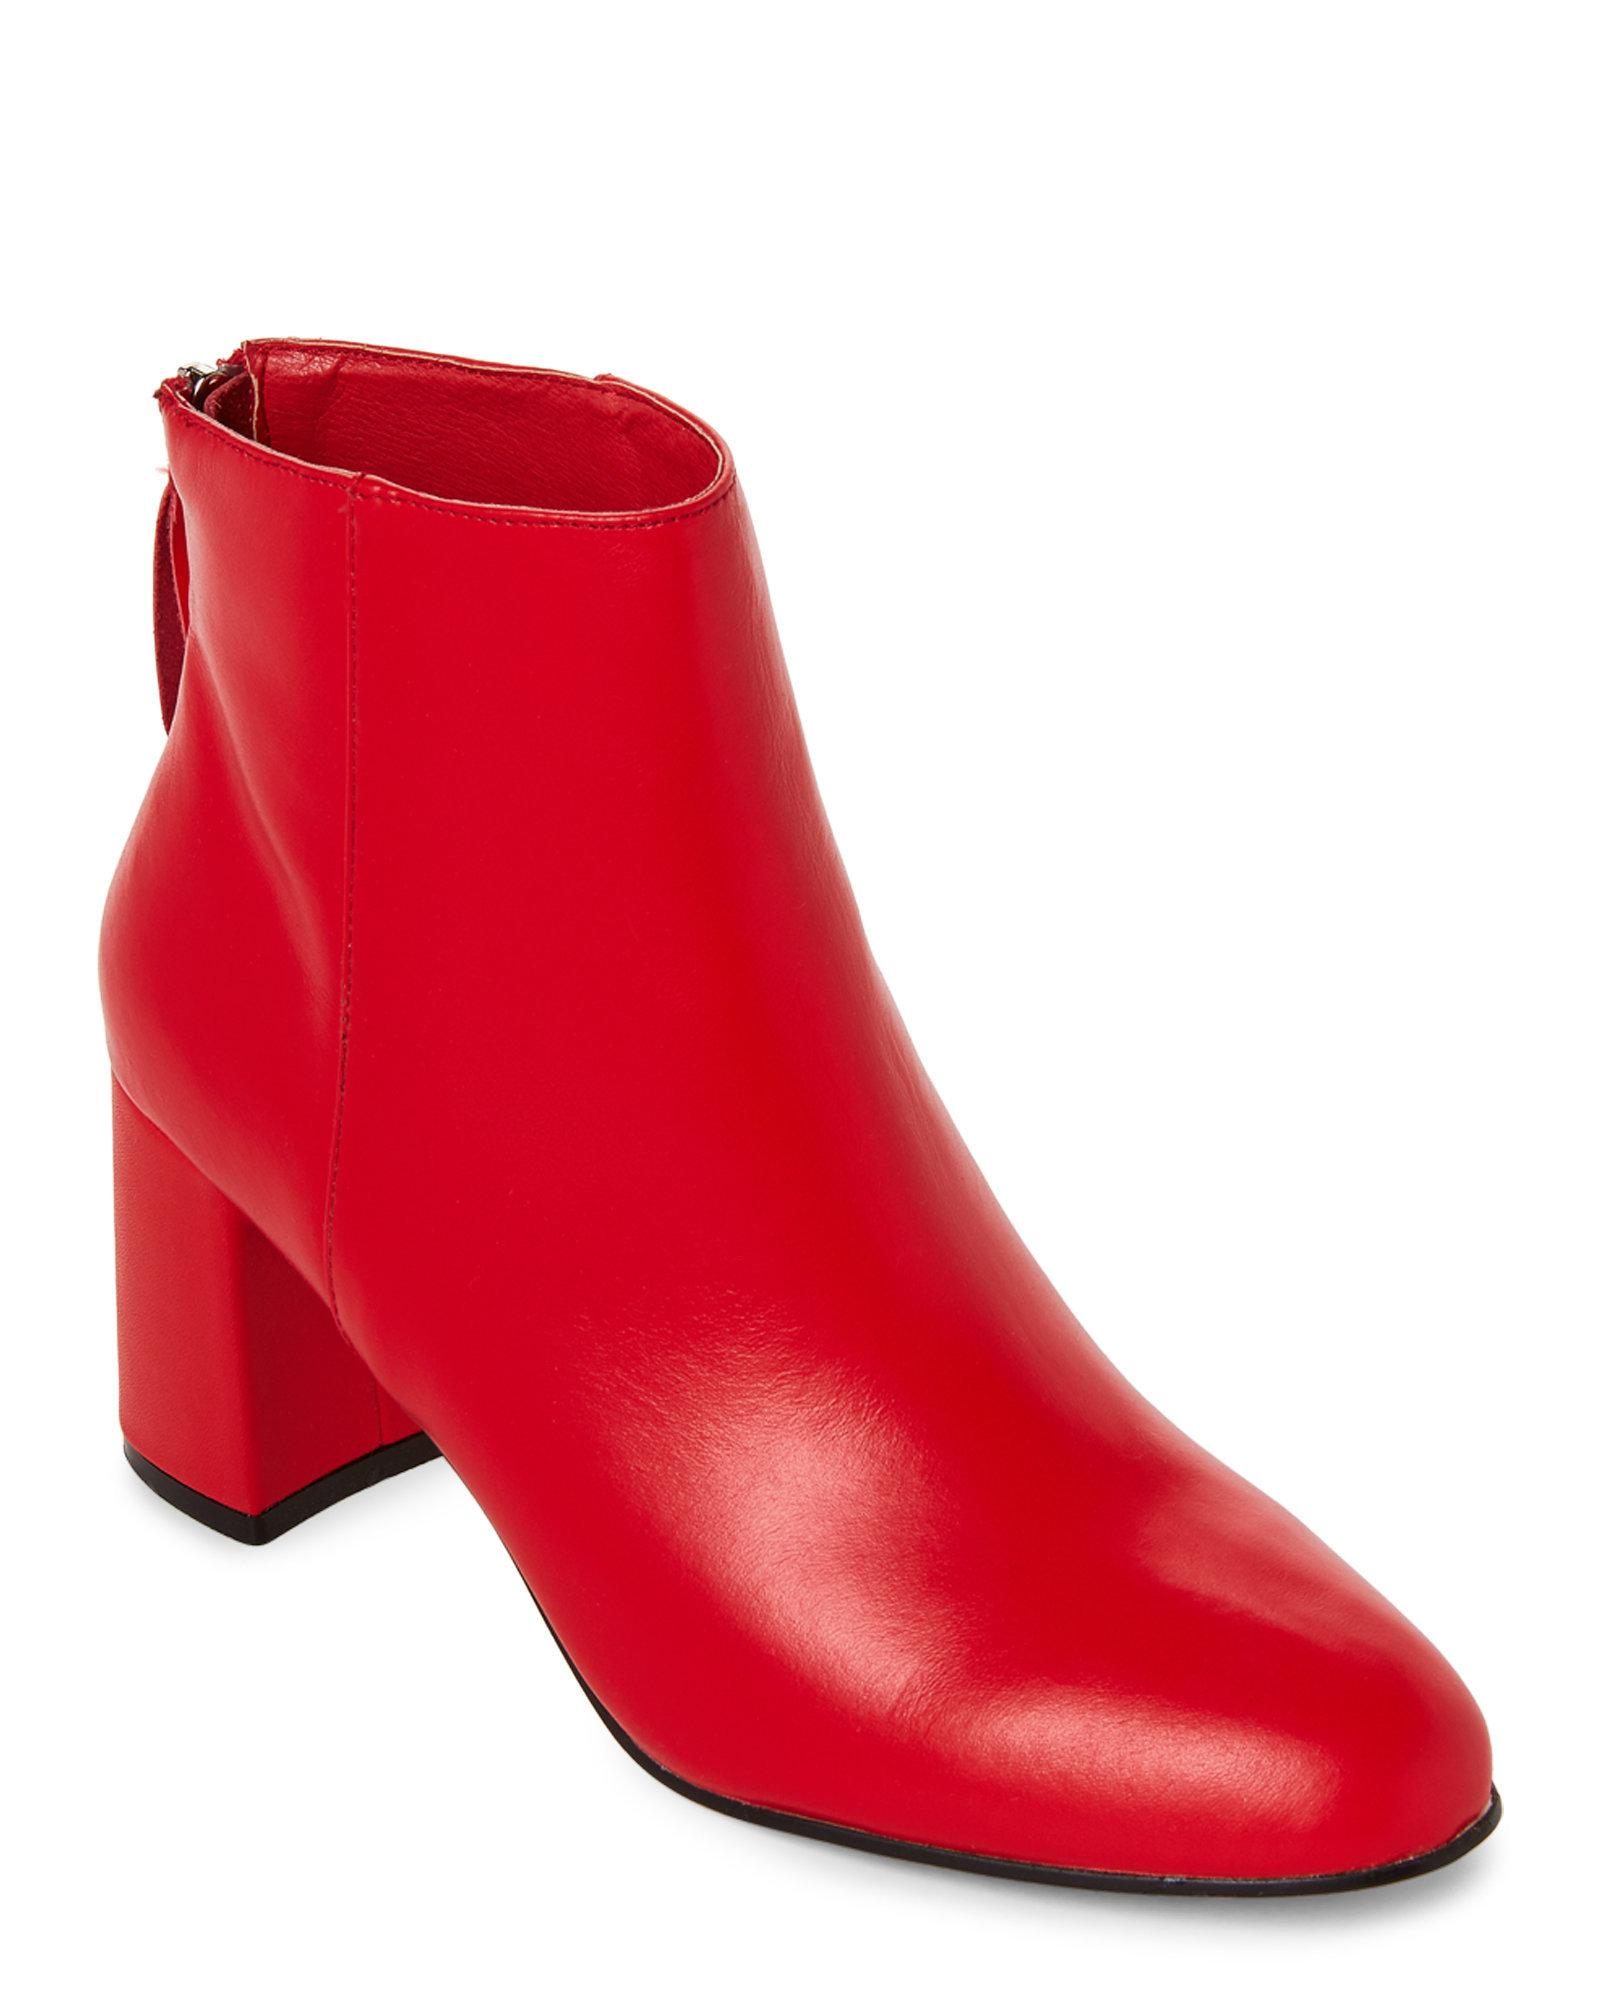 f4c03a98a0 Steve Madden Fire Red Parisa Block Heel Booties in Red - Lyst